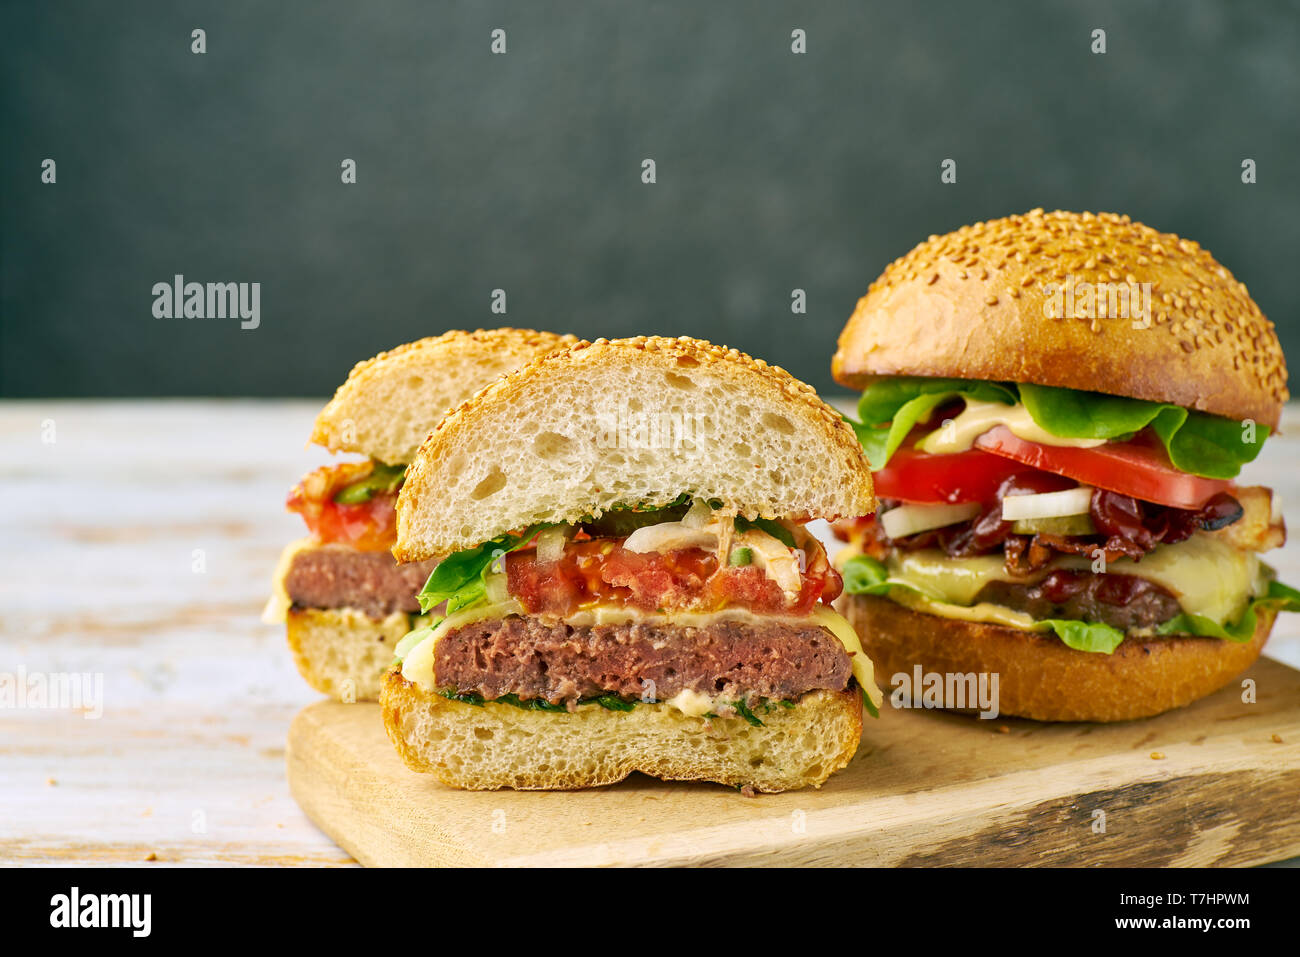 Whole and divided hamburger on old wooden table - Stock Image